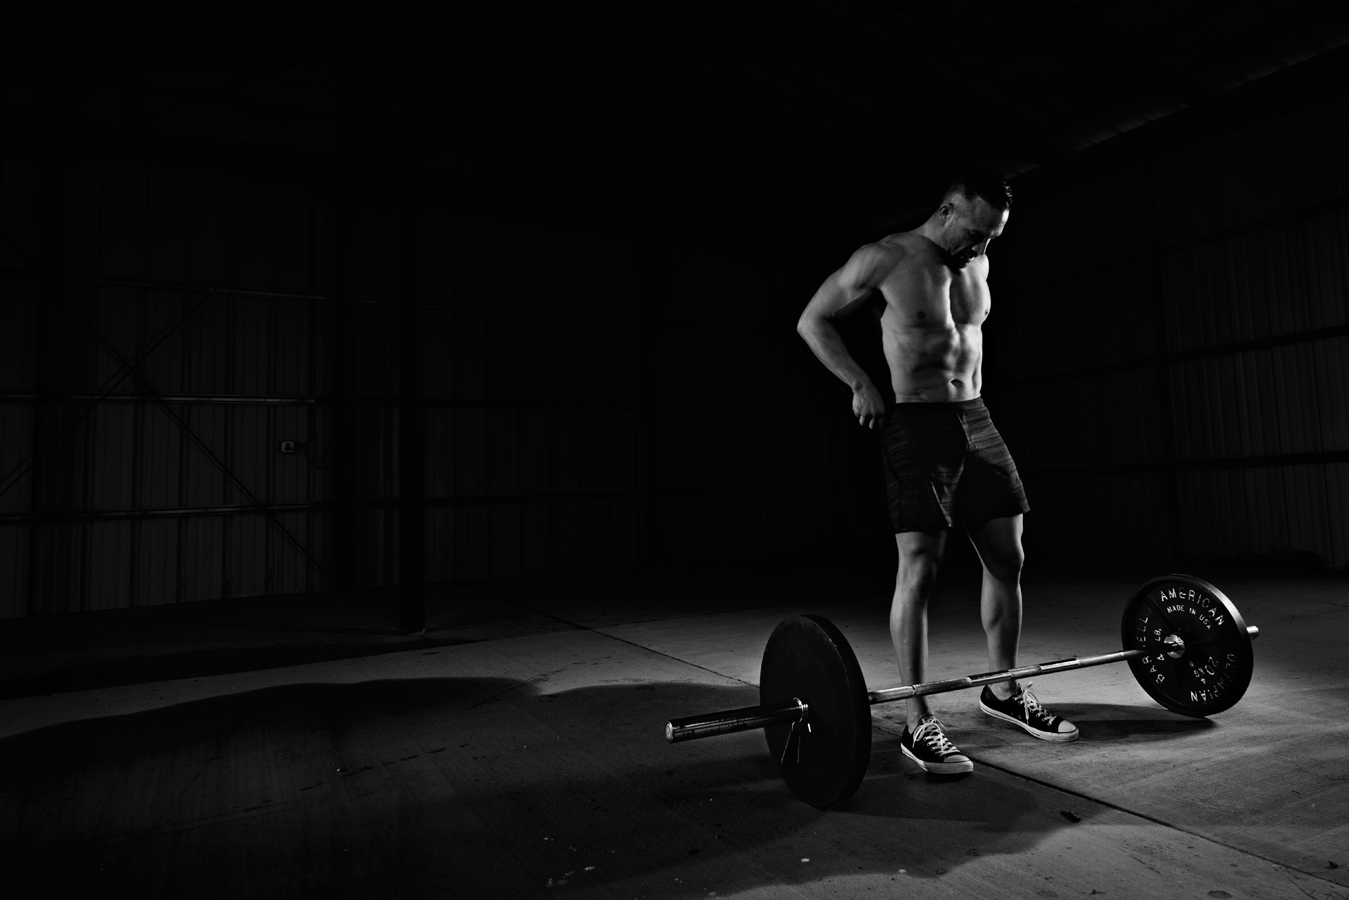 Black and White image of man setting up to do a dead lift. Weight training. Sports and fitness Photography  Fit Man working out  Kenneth M. Ruggiano is a portrait photographer living in Tulsa, Oklahoma